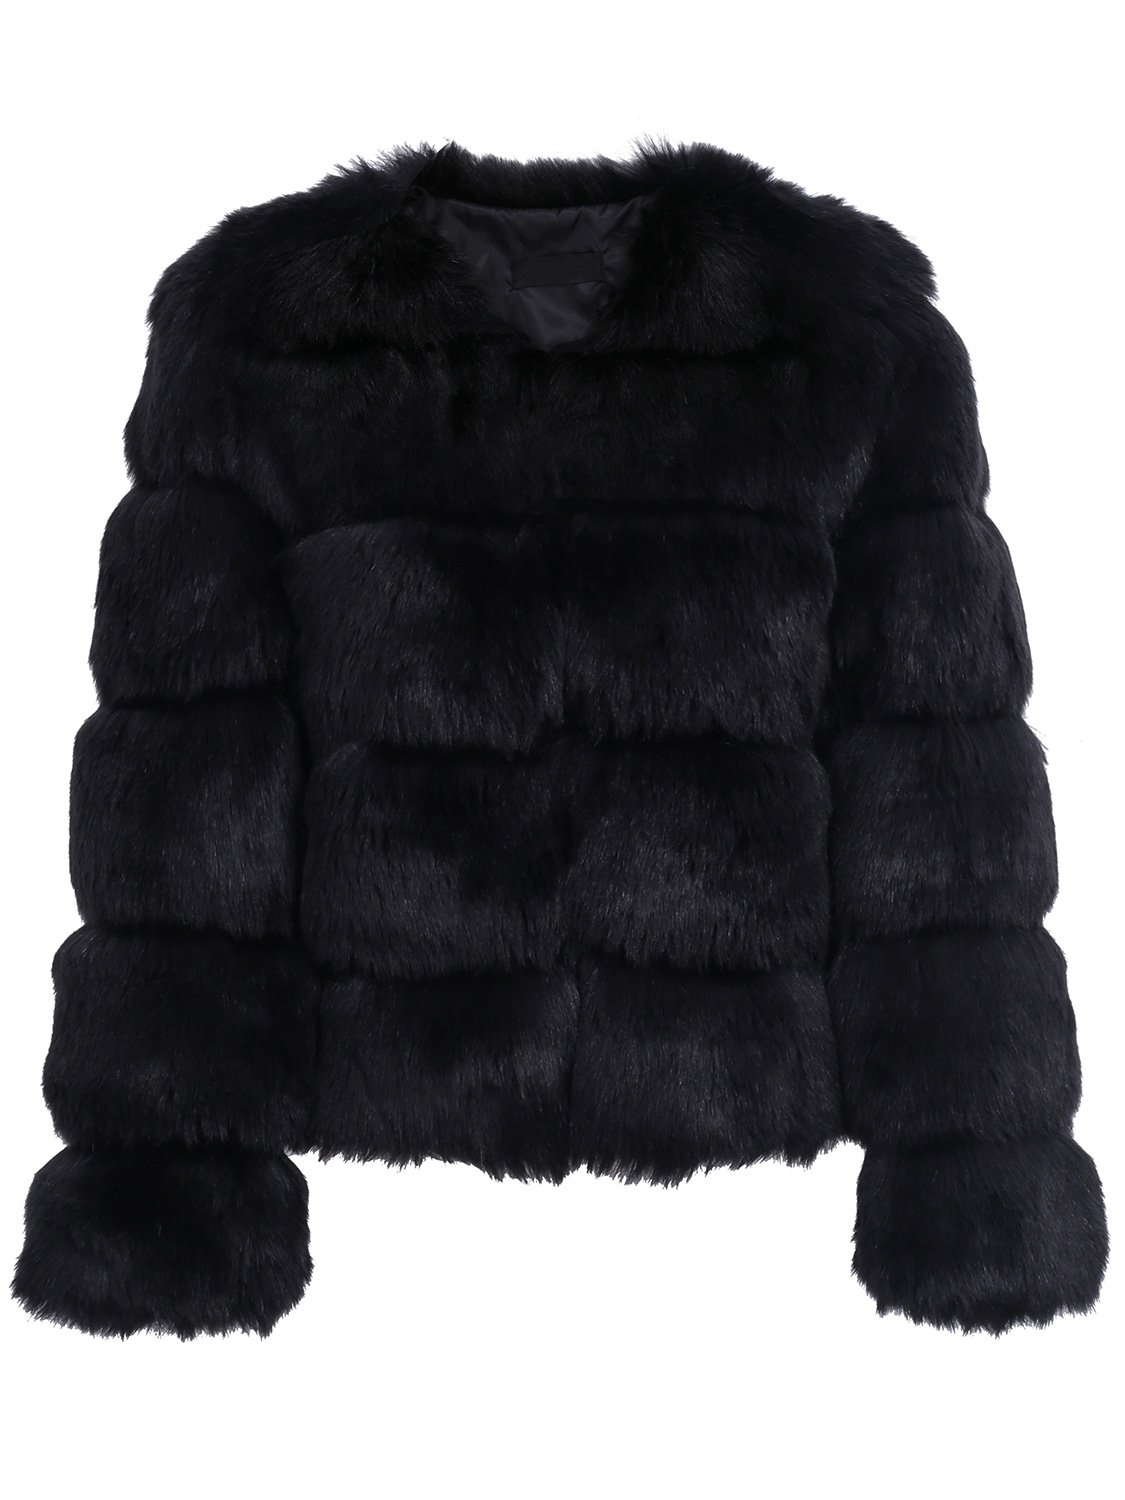 Simplee Women Luxury Winter Warm Fluffy Faux Fur Short Coat Jacket Parka Outwear, Black, 0/2, Small